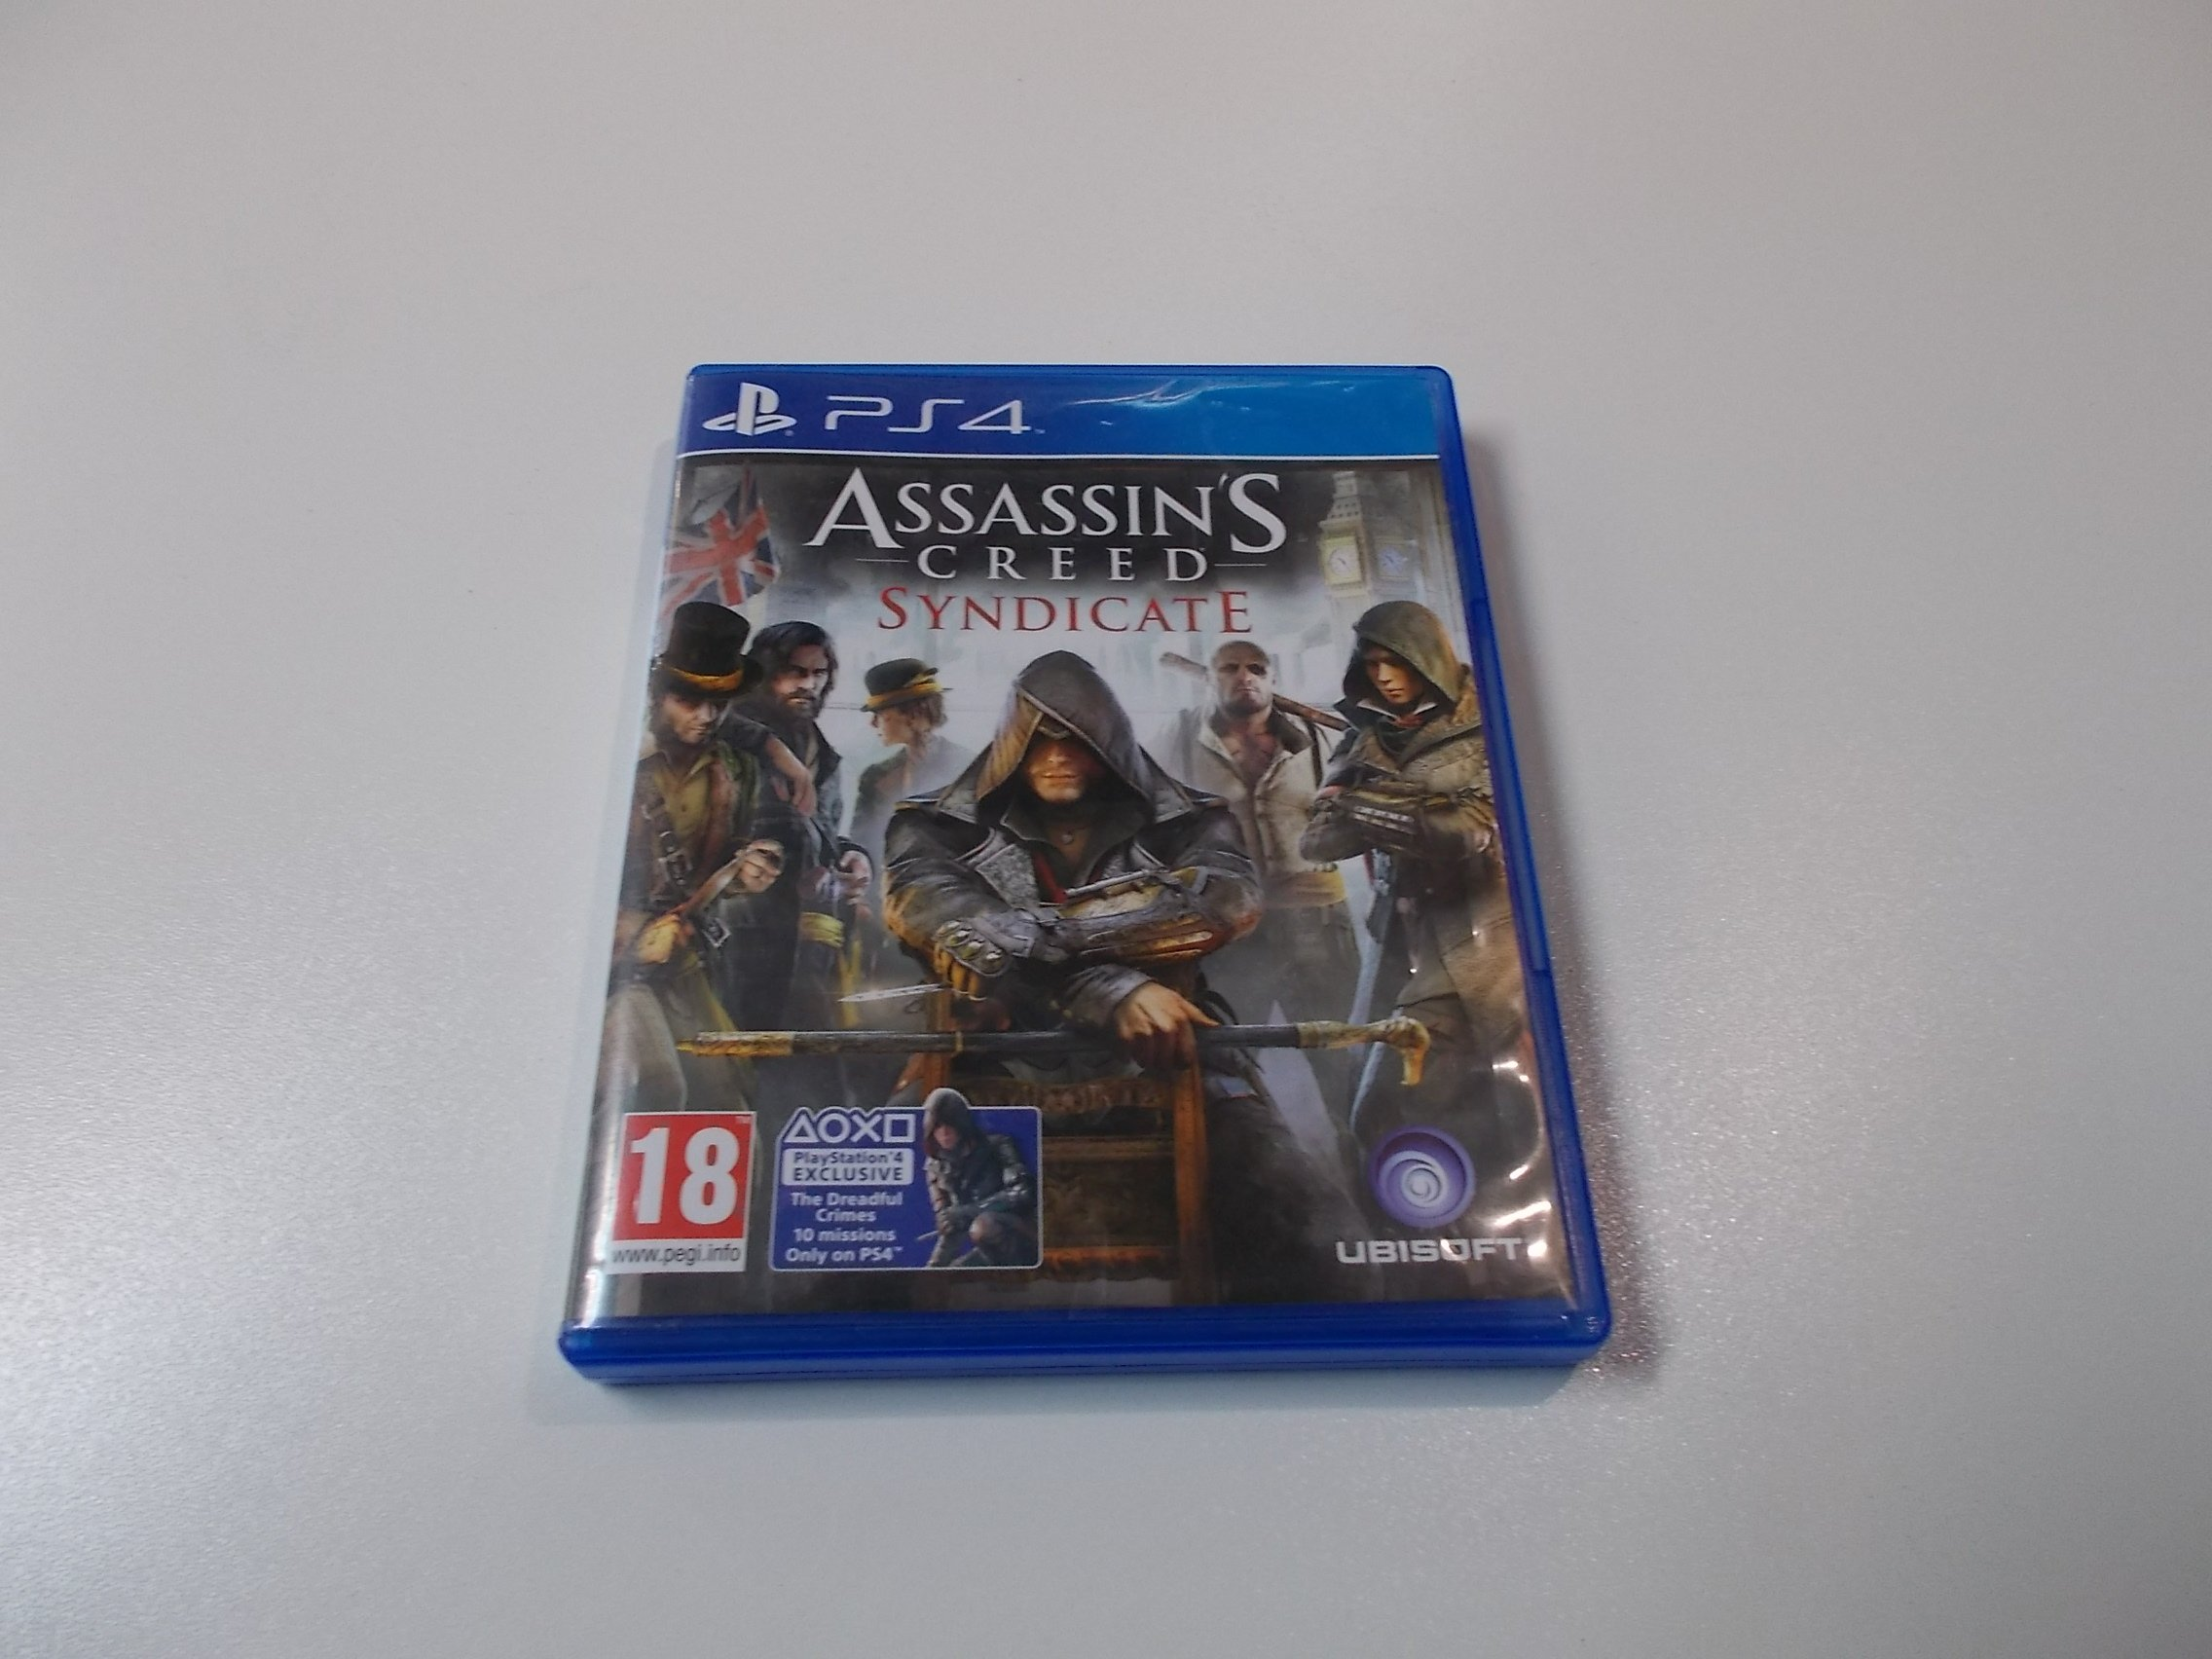 Assassin's Creed: Syndicate - GRA Ps4 - Opole 0422